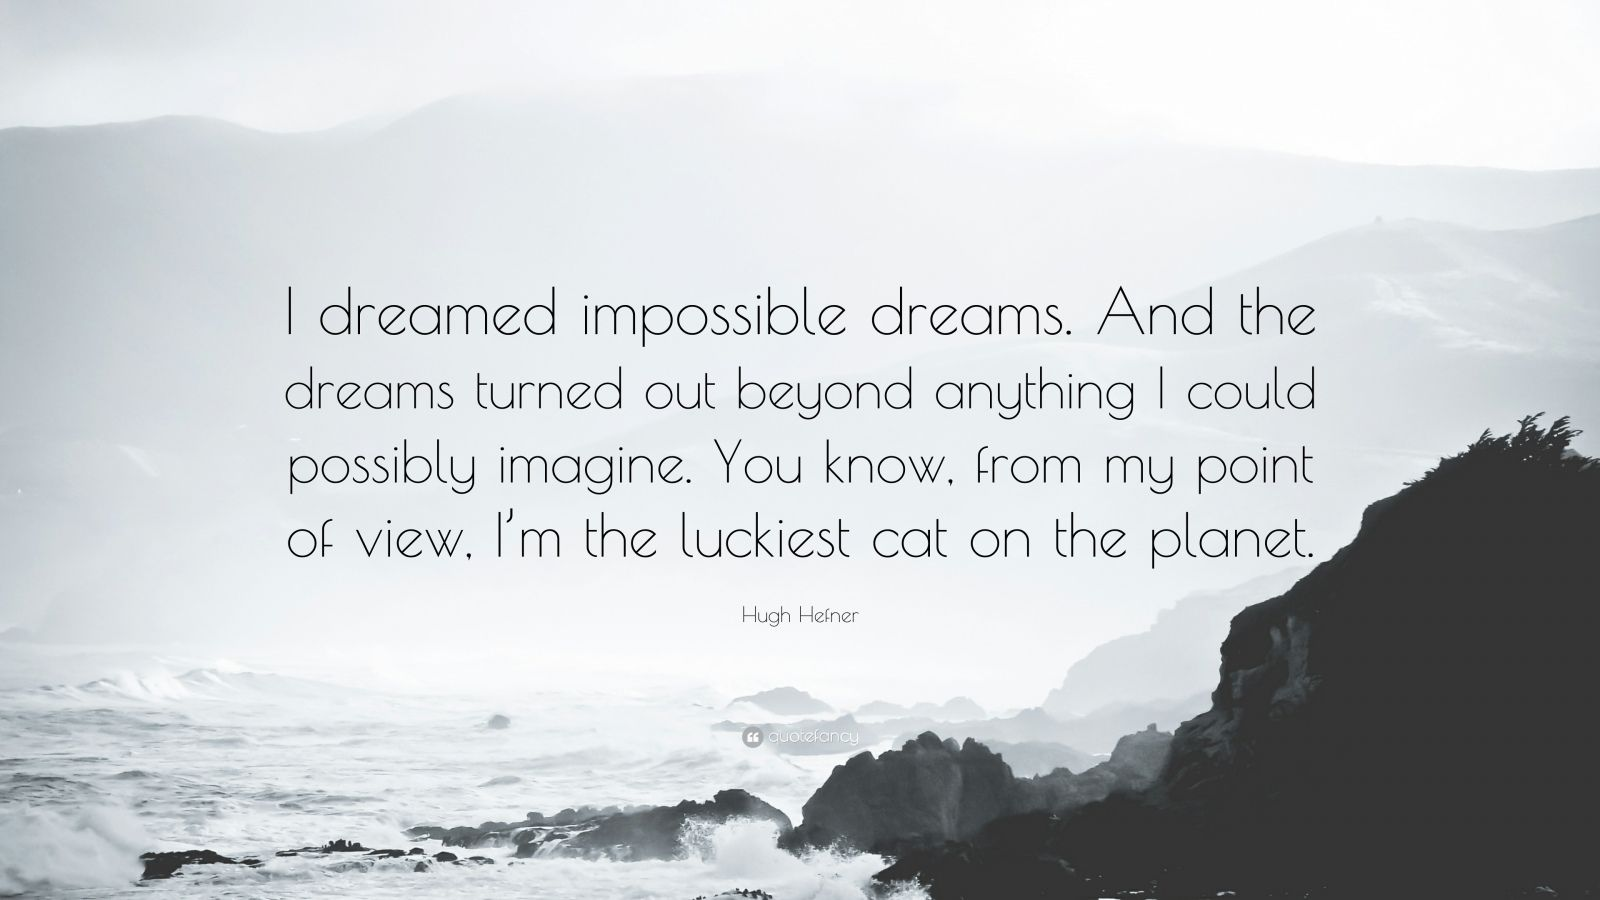 """Hugh Hefner Quote: """"I dreamed impossible dreams. And the dreams turned out beyond anything I could possibly imagine. You know, from my point of view, I'm the luckiest cat on the planet."""""""